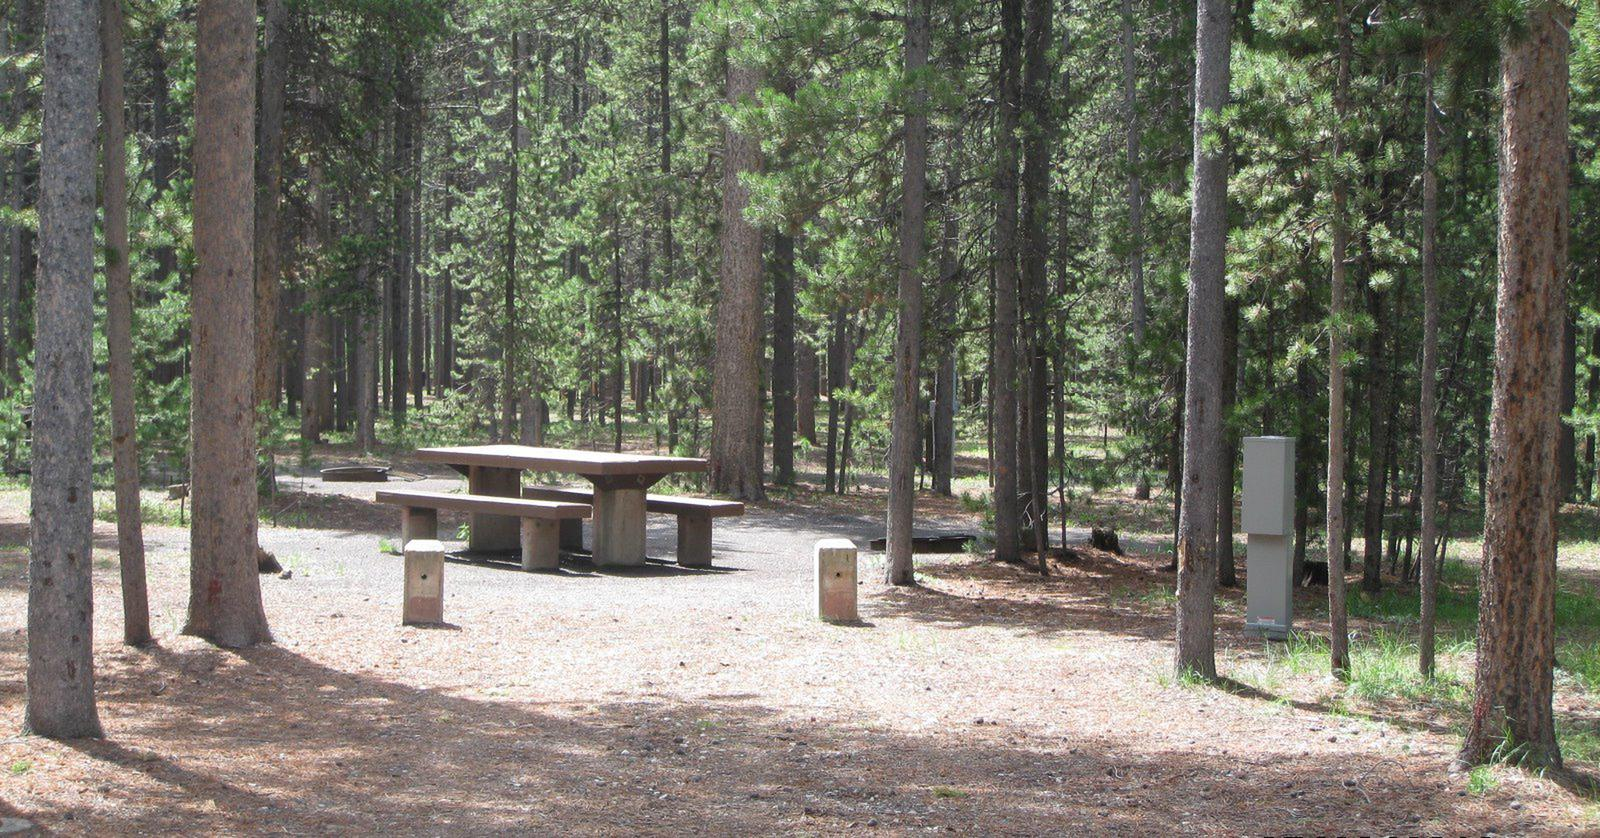 Site C22, surrounded by pine trees, picnic table & fire ringSite C22